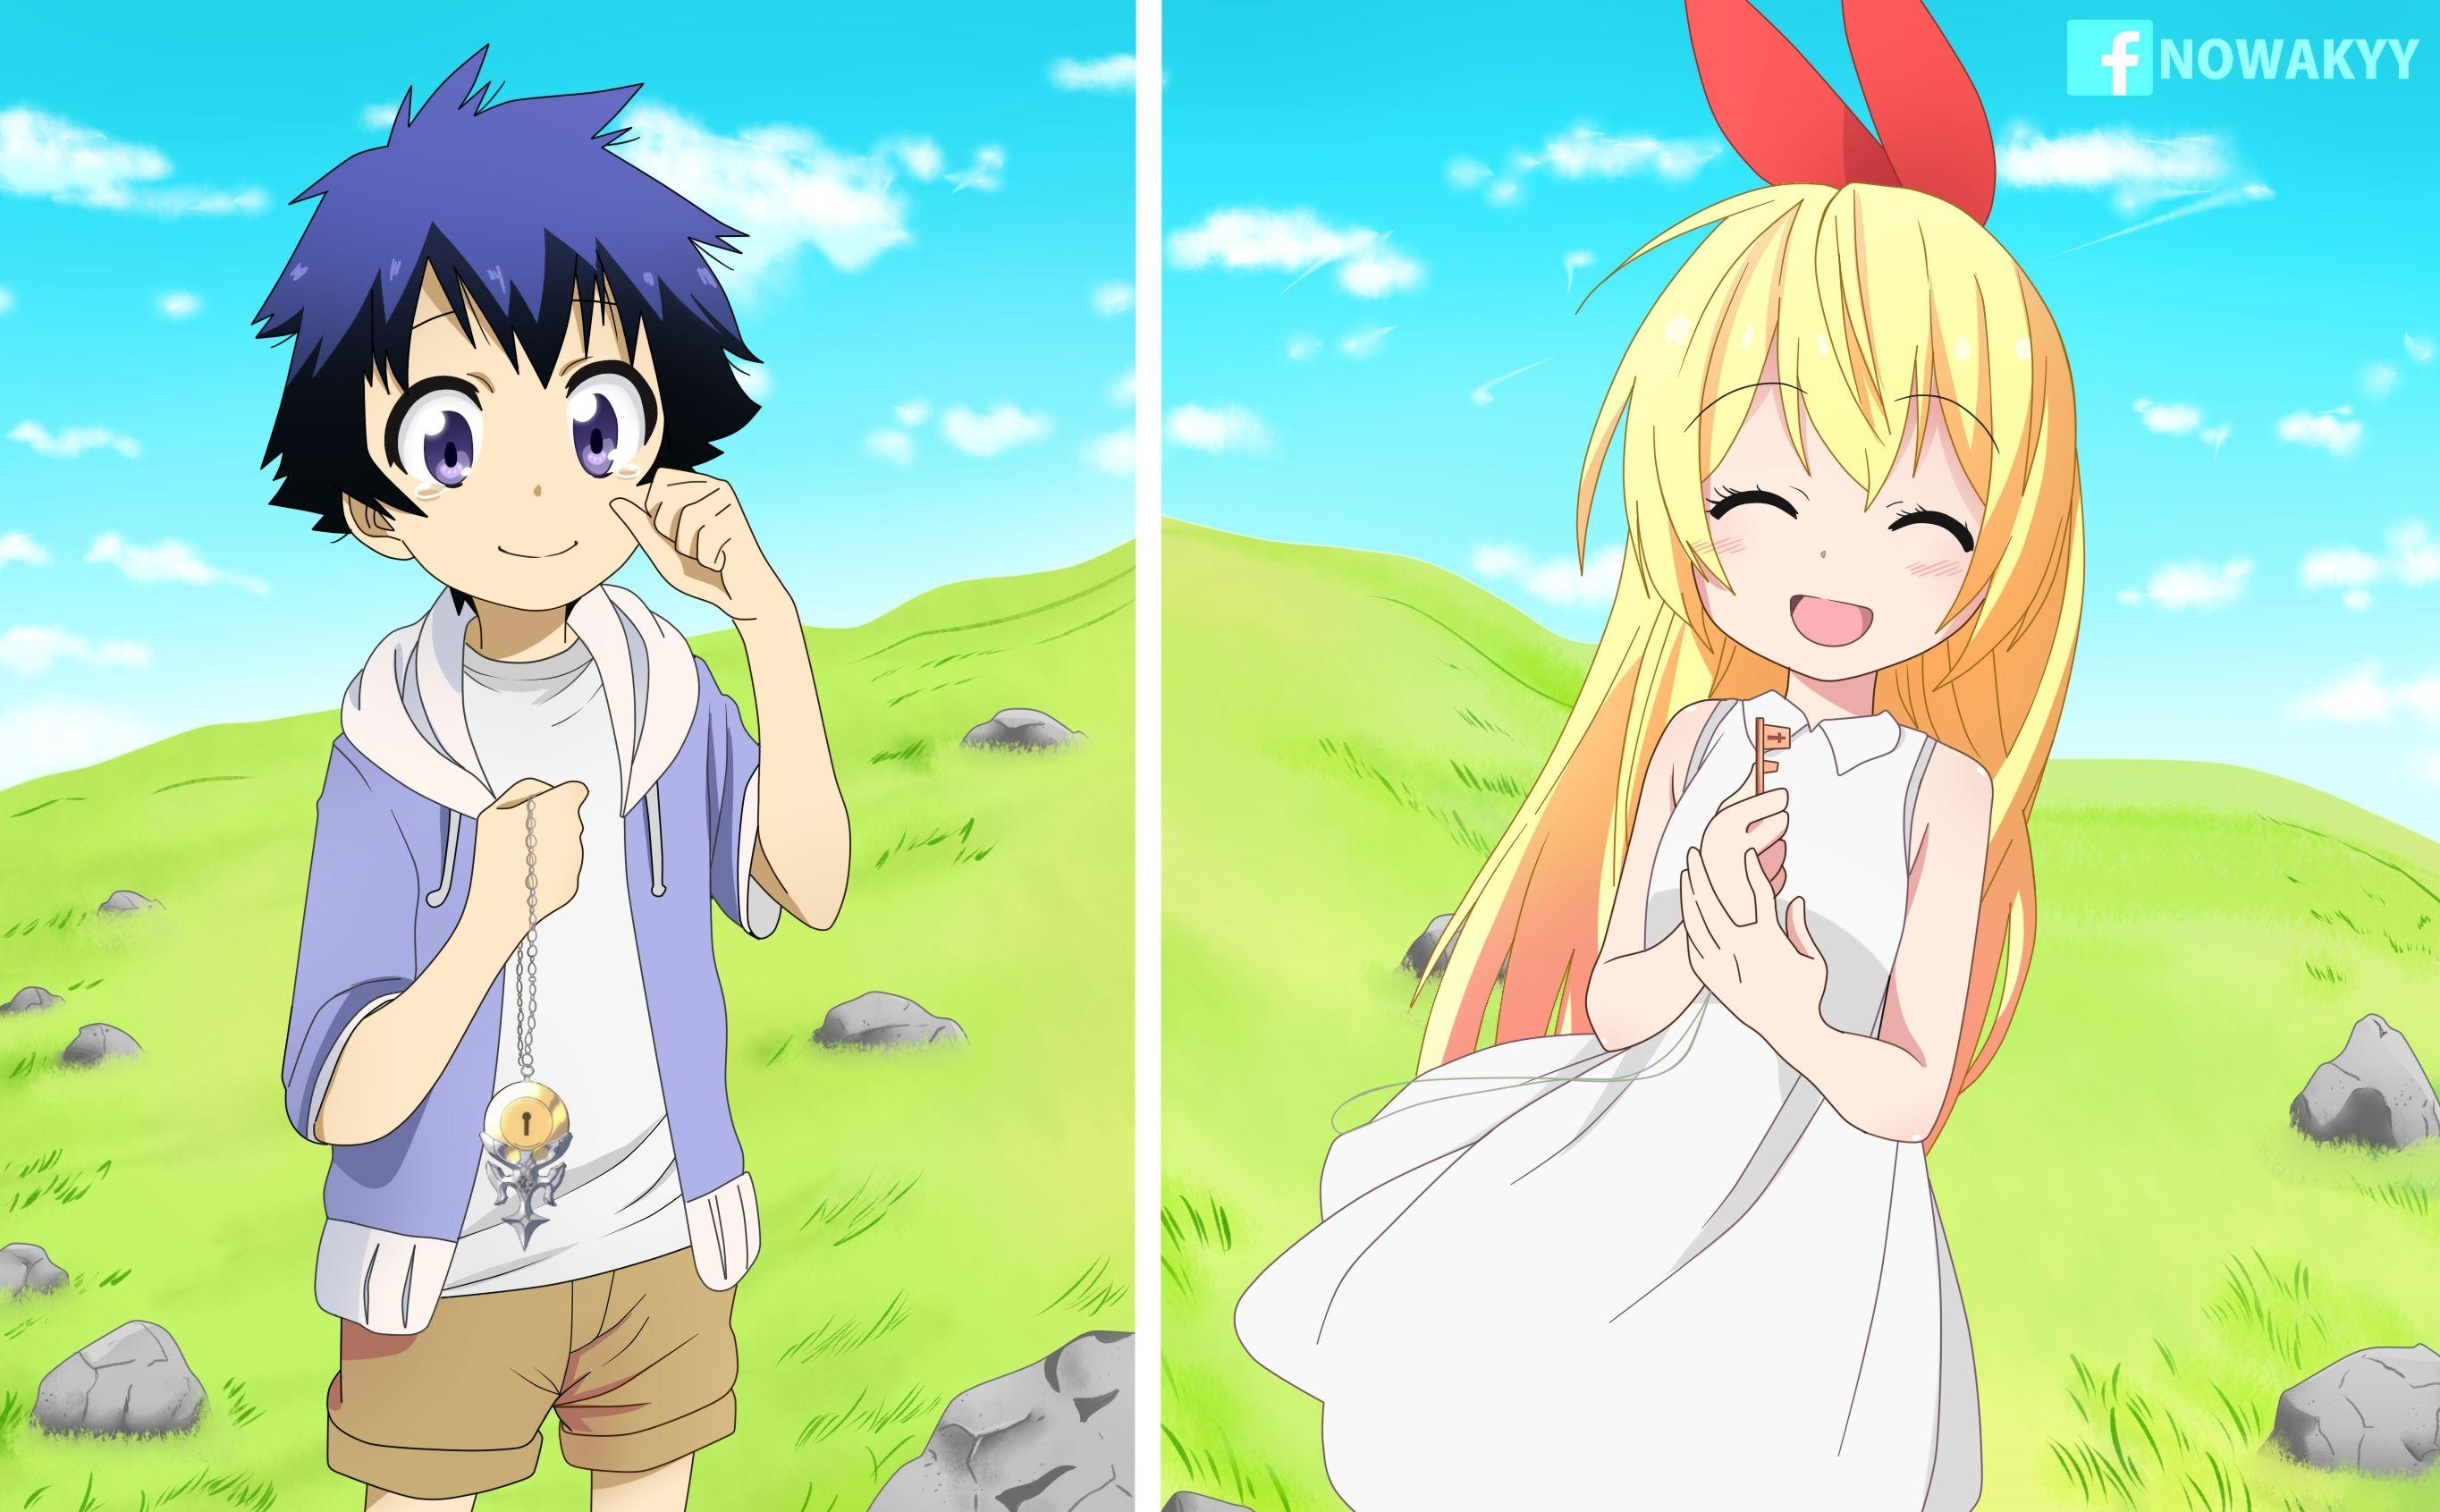 Cute Child Couple Wallpaper Hd Nisekoi Wallpapers Wallpaper Cave